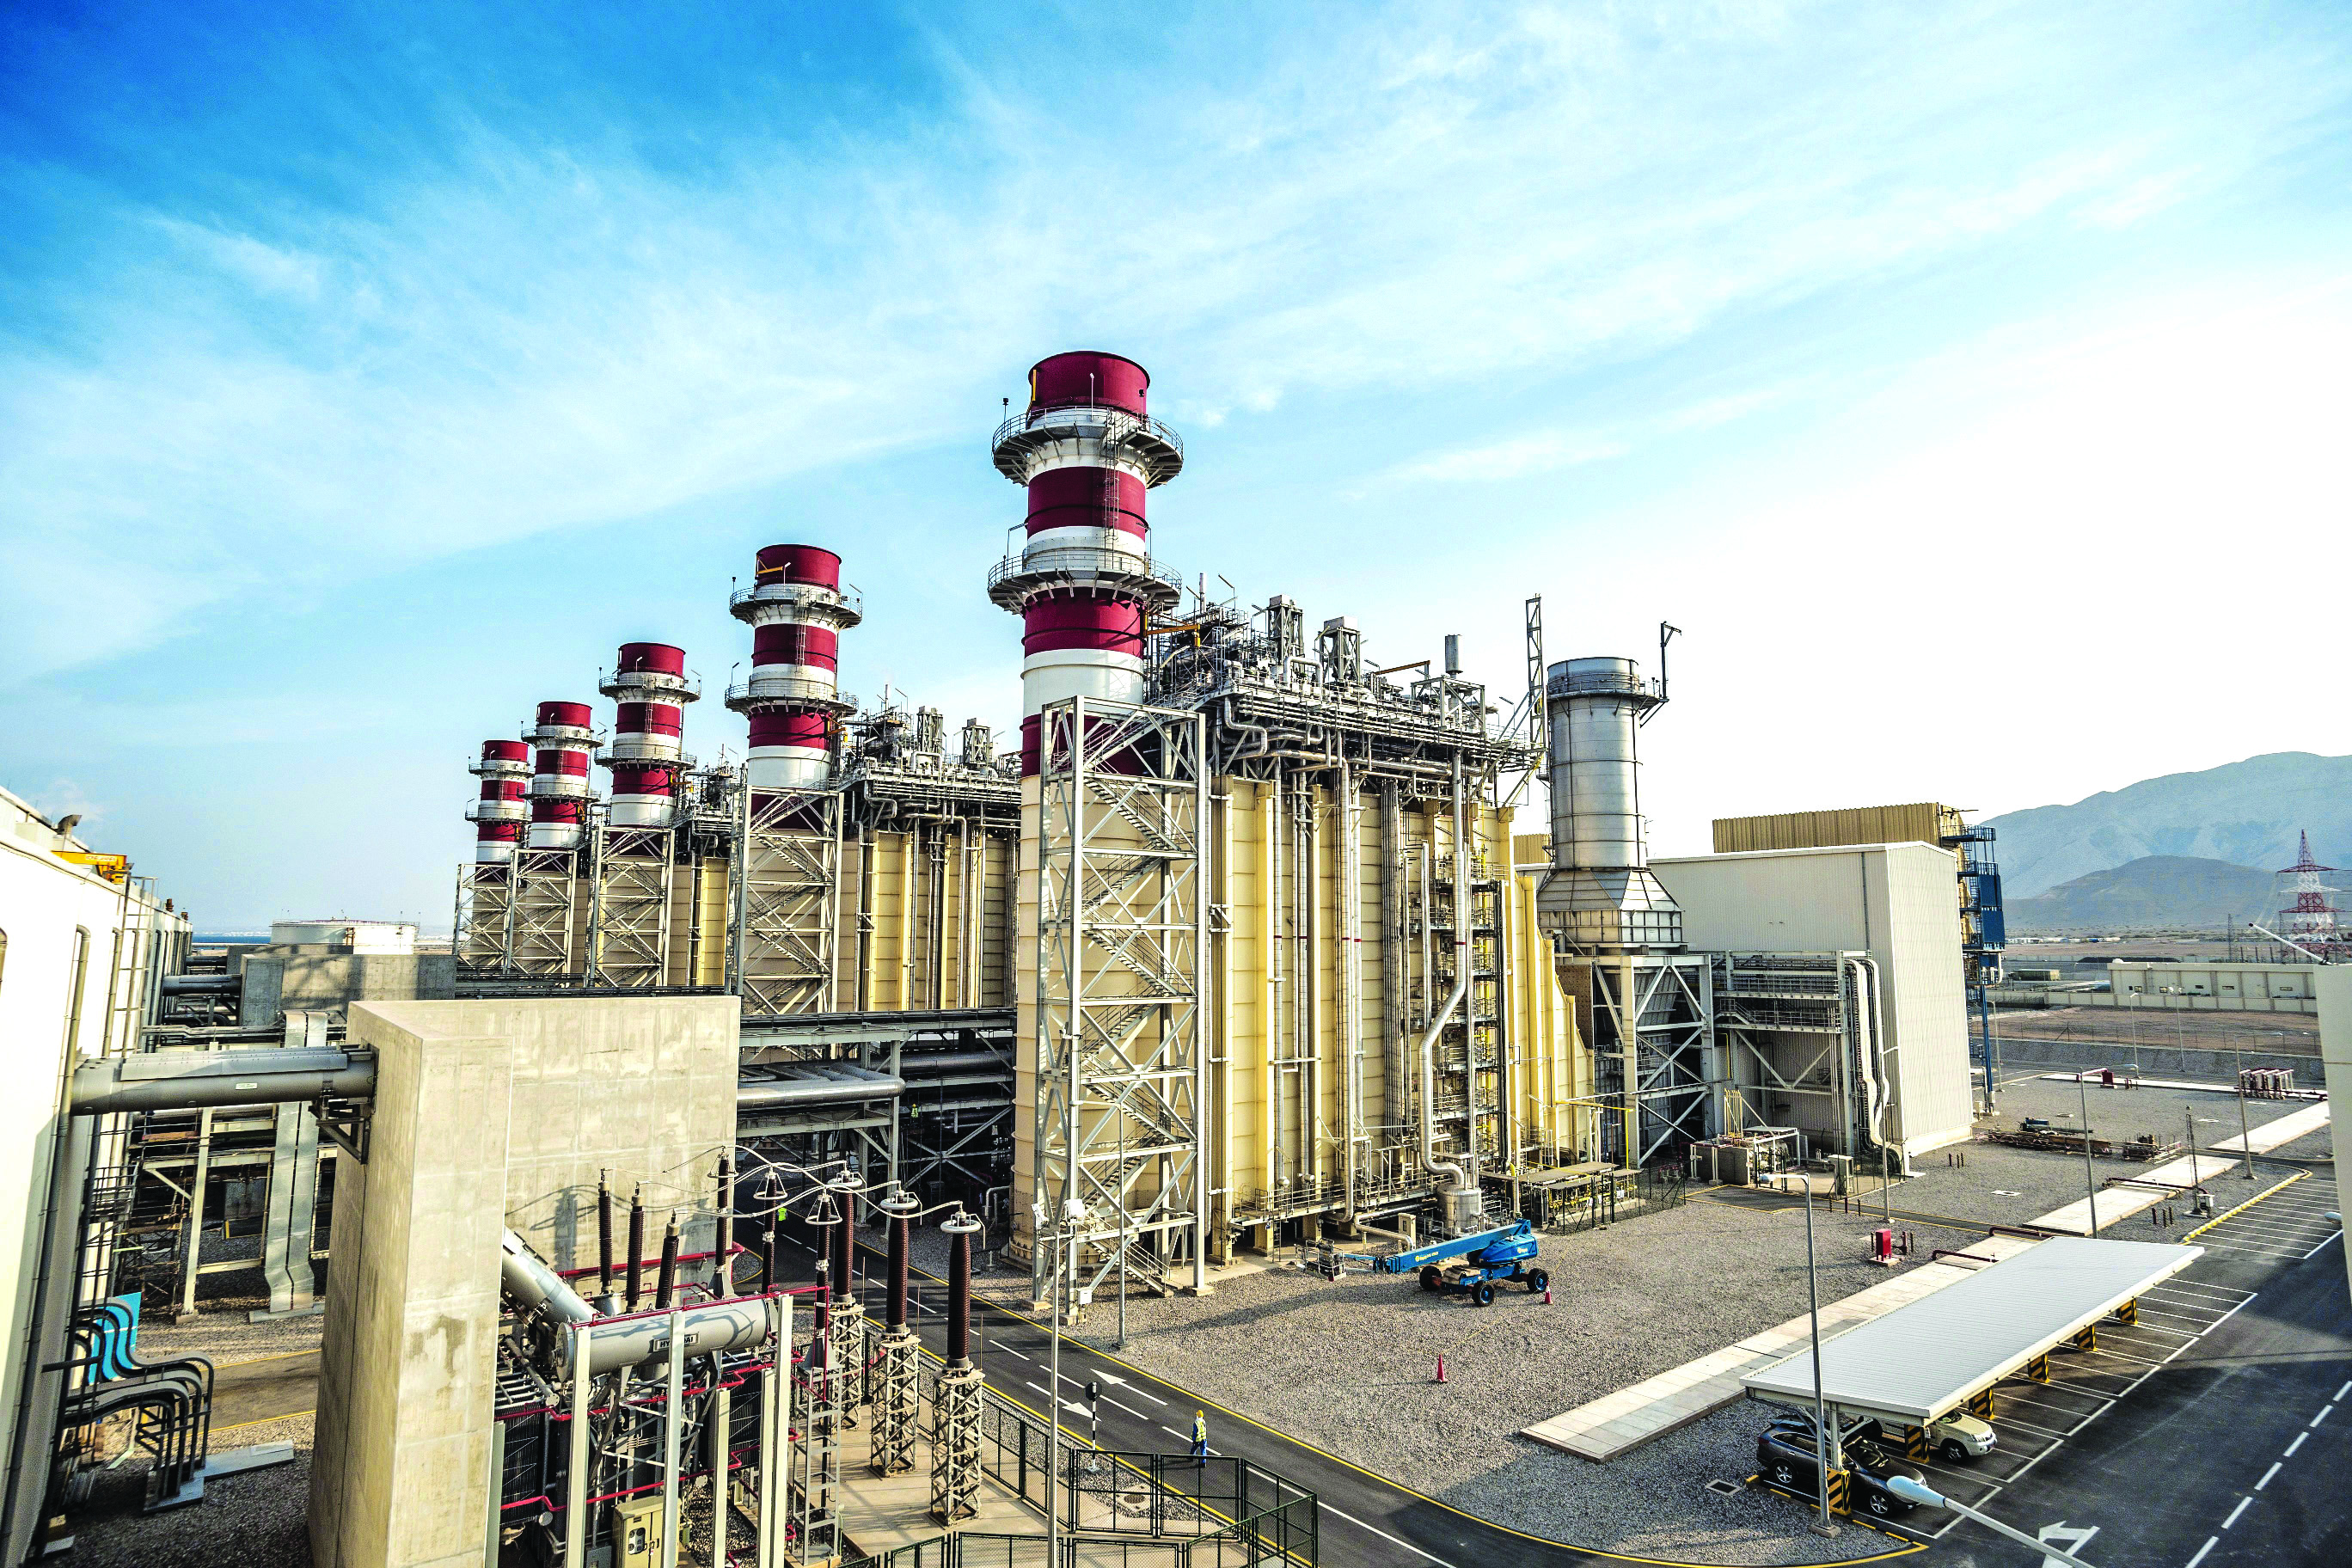 Ibri power project aims to deliver 940MW in April 2018